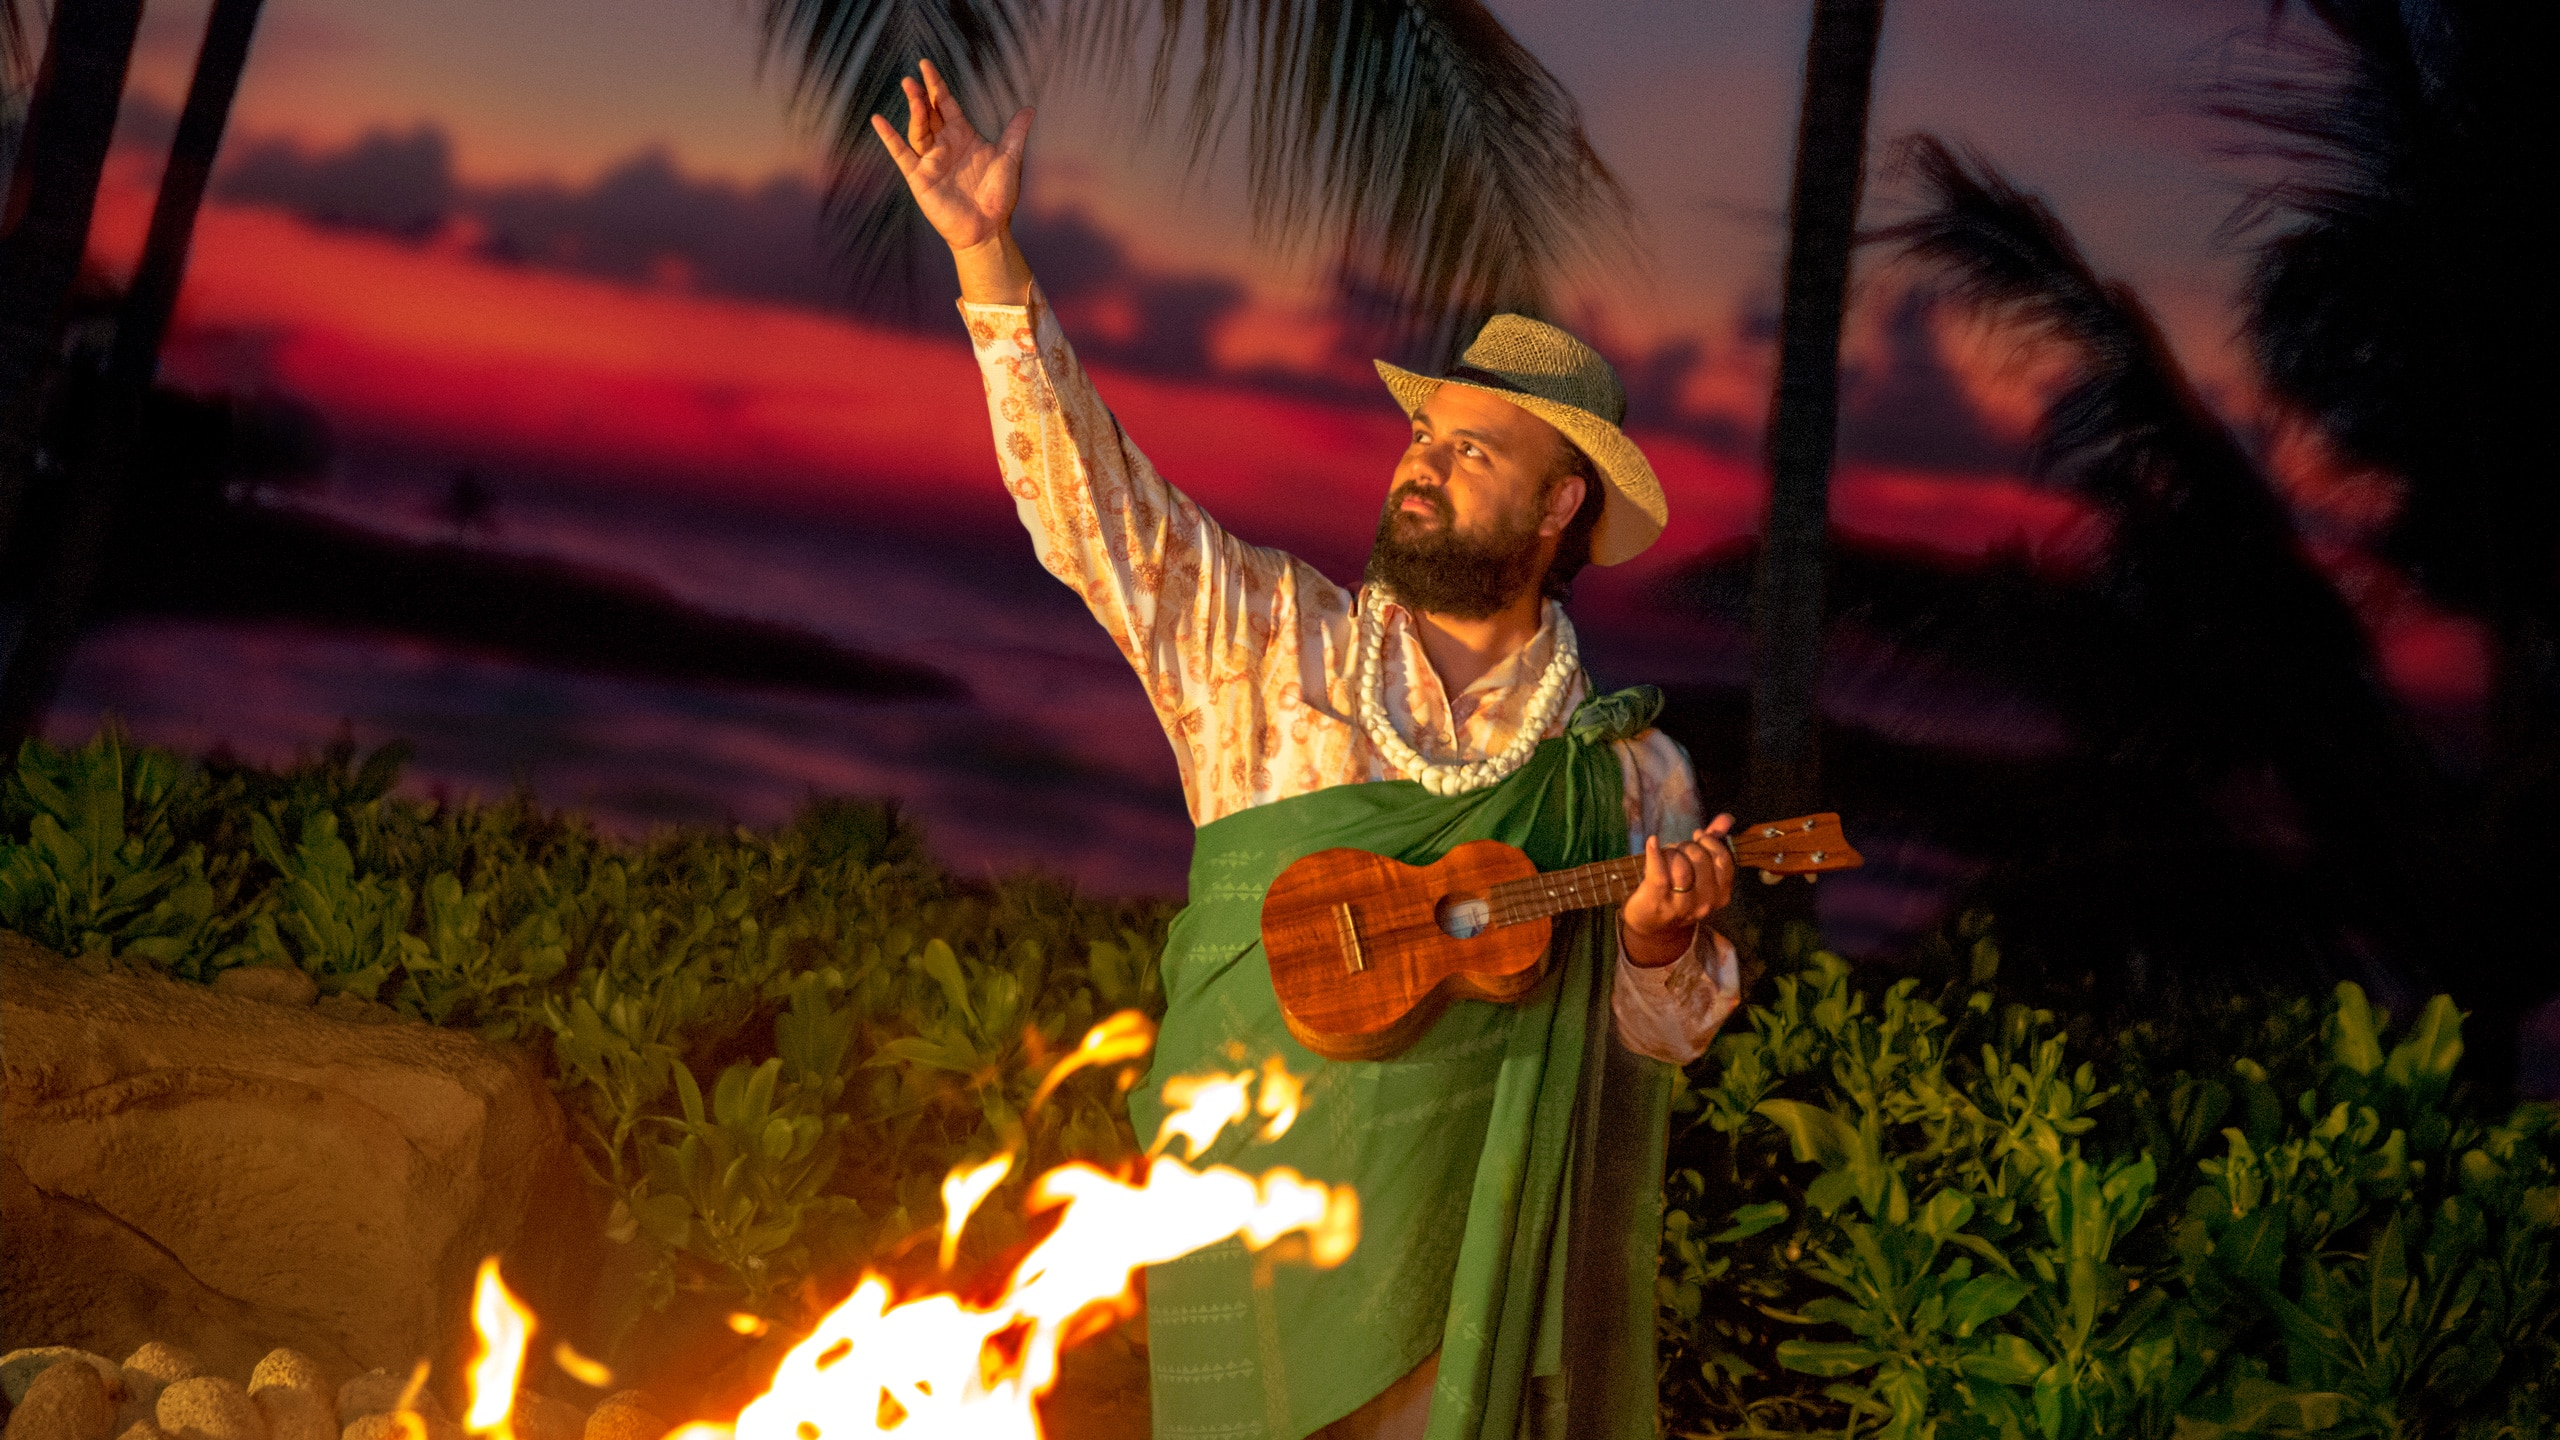 Uncle stands beside the fire pit holding a ukulele and gesturing to the night sky